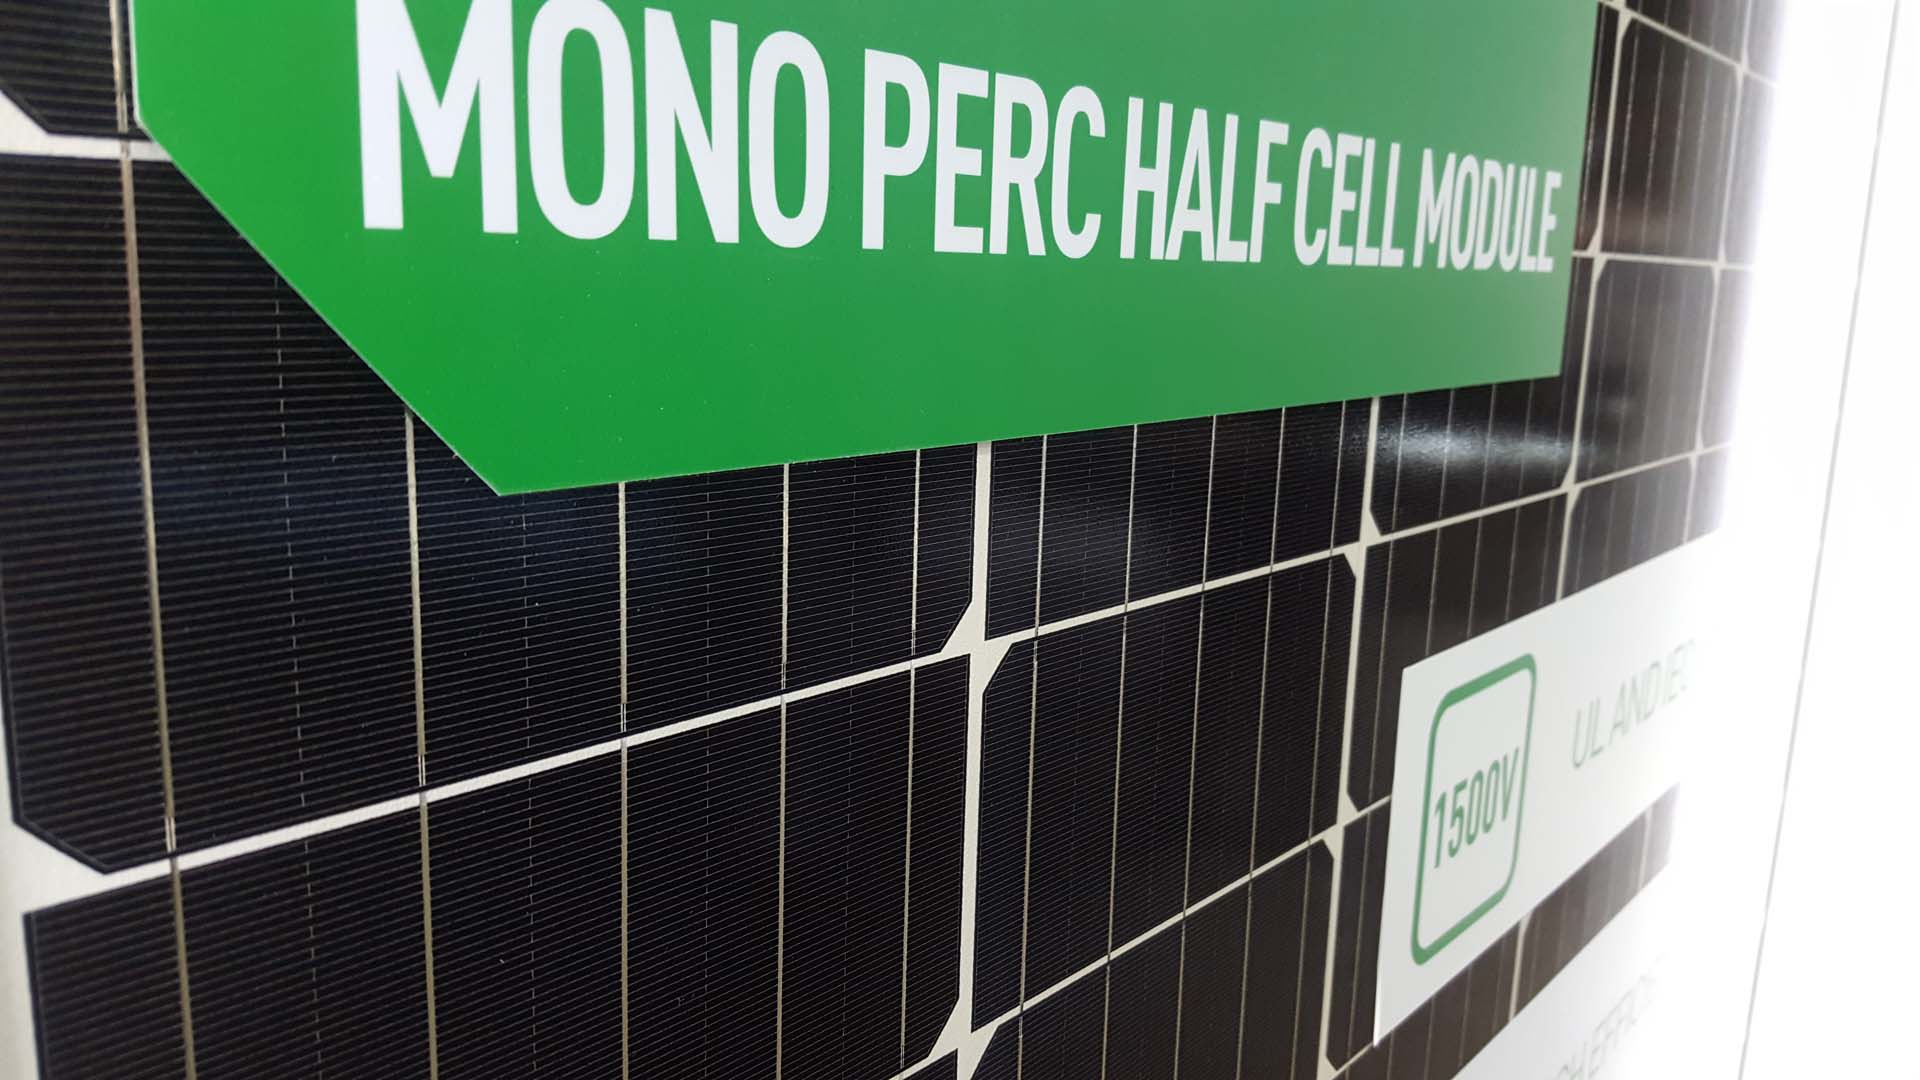 JinkoSolar said it had supplied 10MW of its P-type mono PERC 'Eagle' modules (JKM295M-60) series for a PV power plant project built by Huaneng Renewables in Inner Mongolia,  China. Image: PV Tech